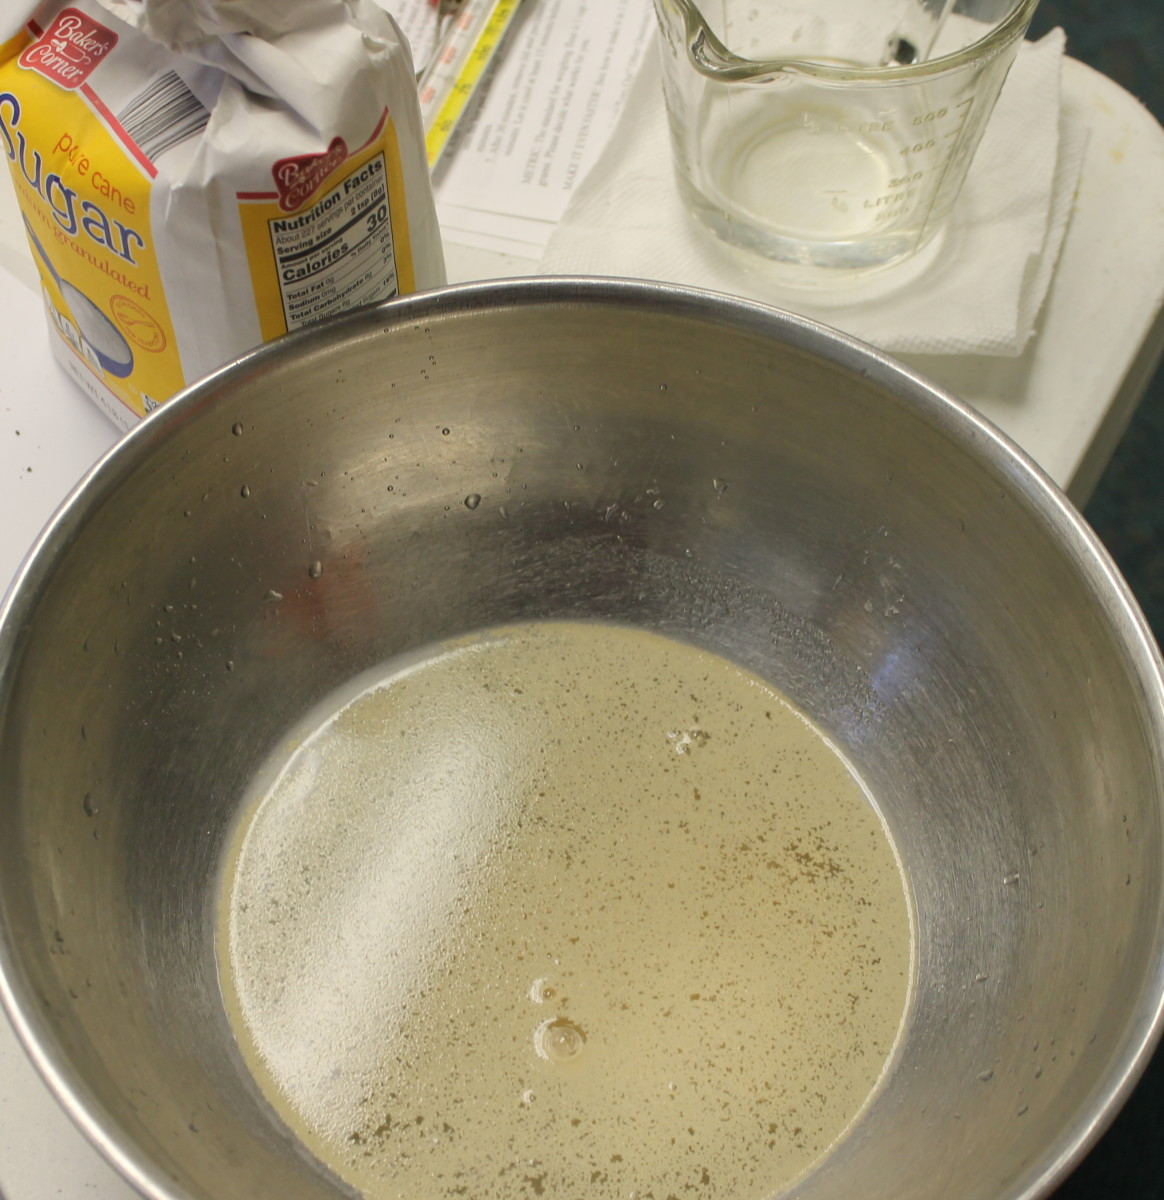 Yeast with water and sugar